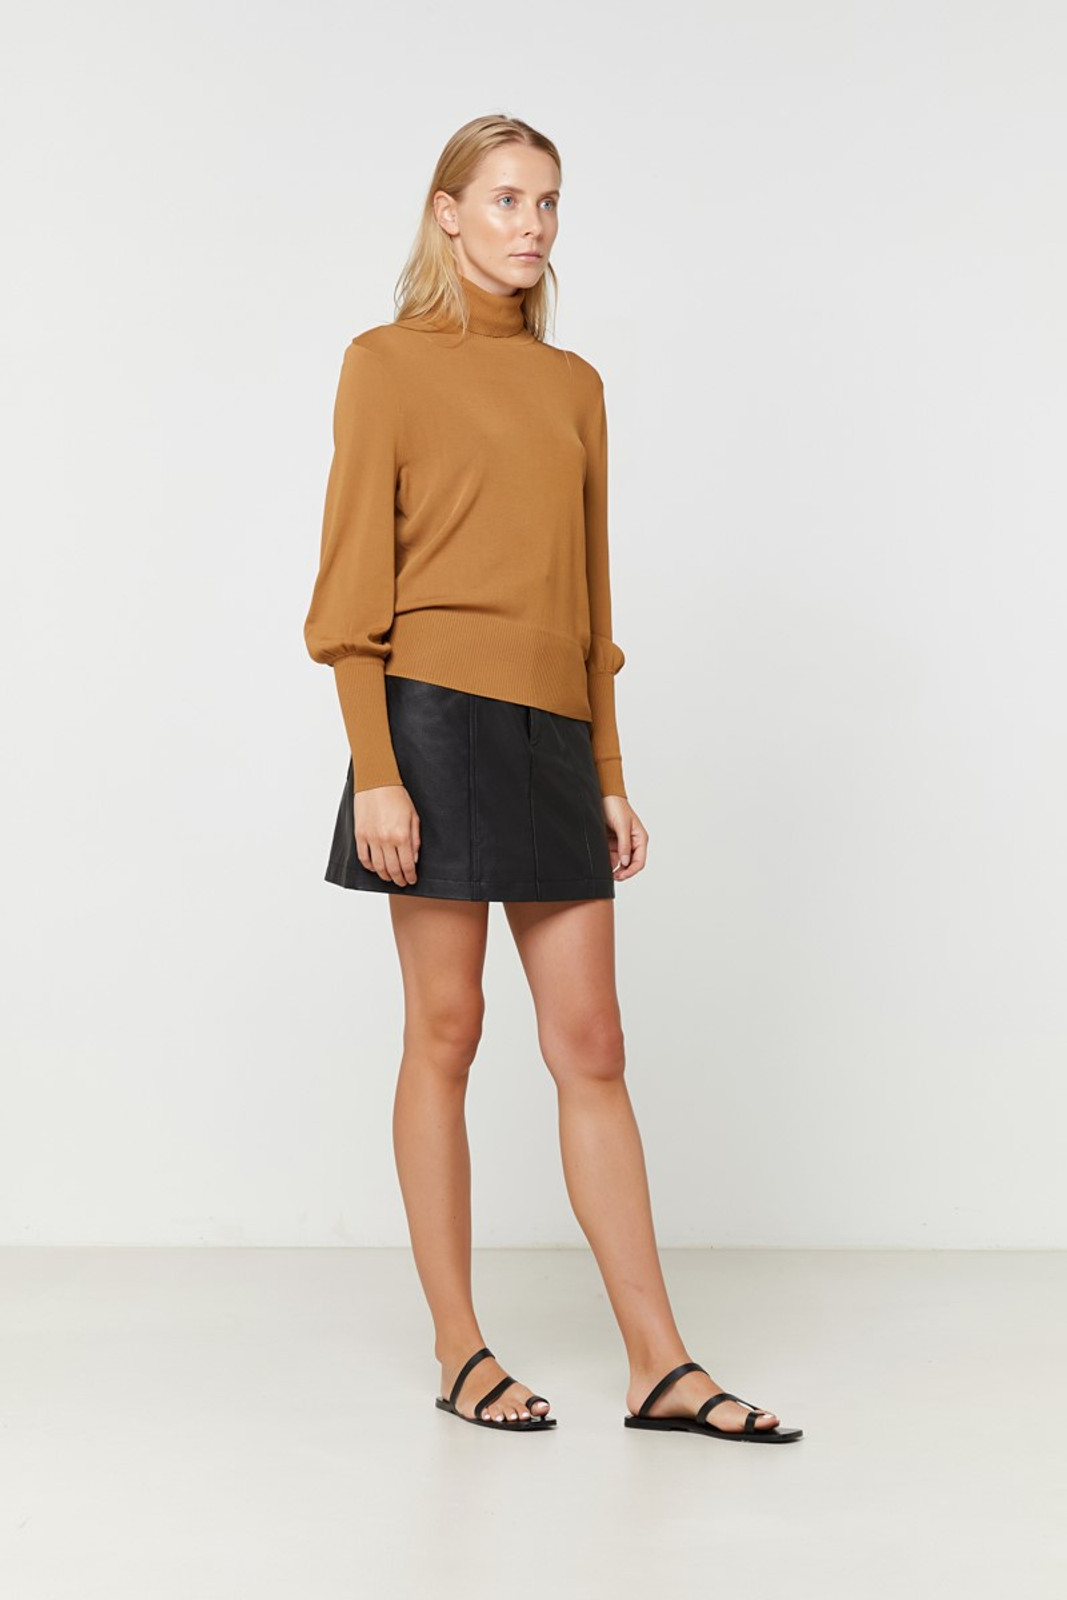 Elka Collective Jacy Knit Yellow  4